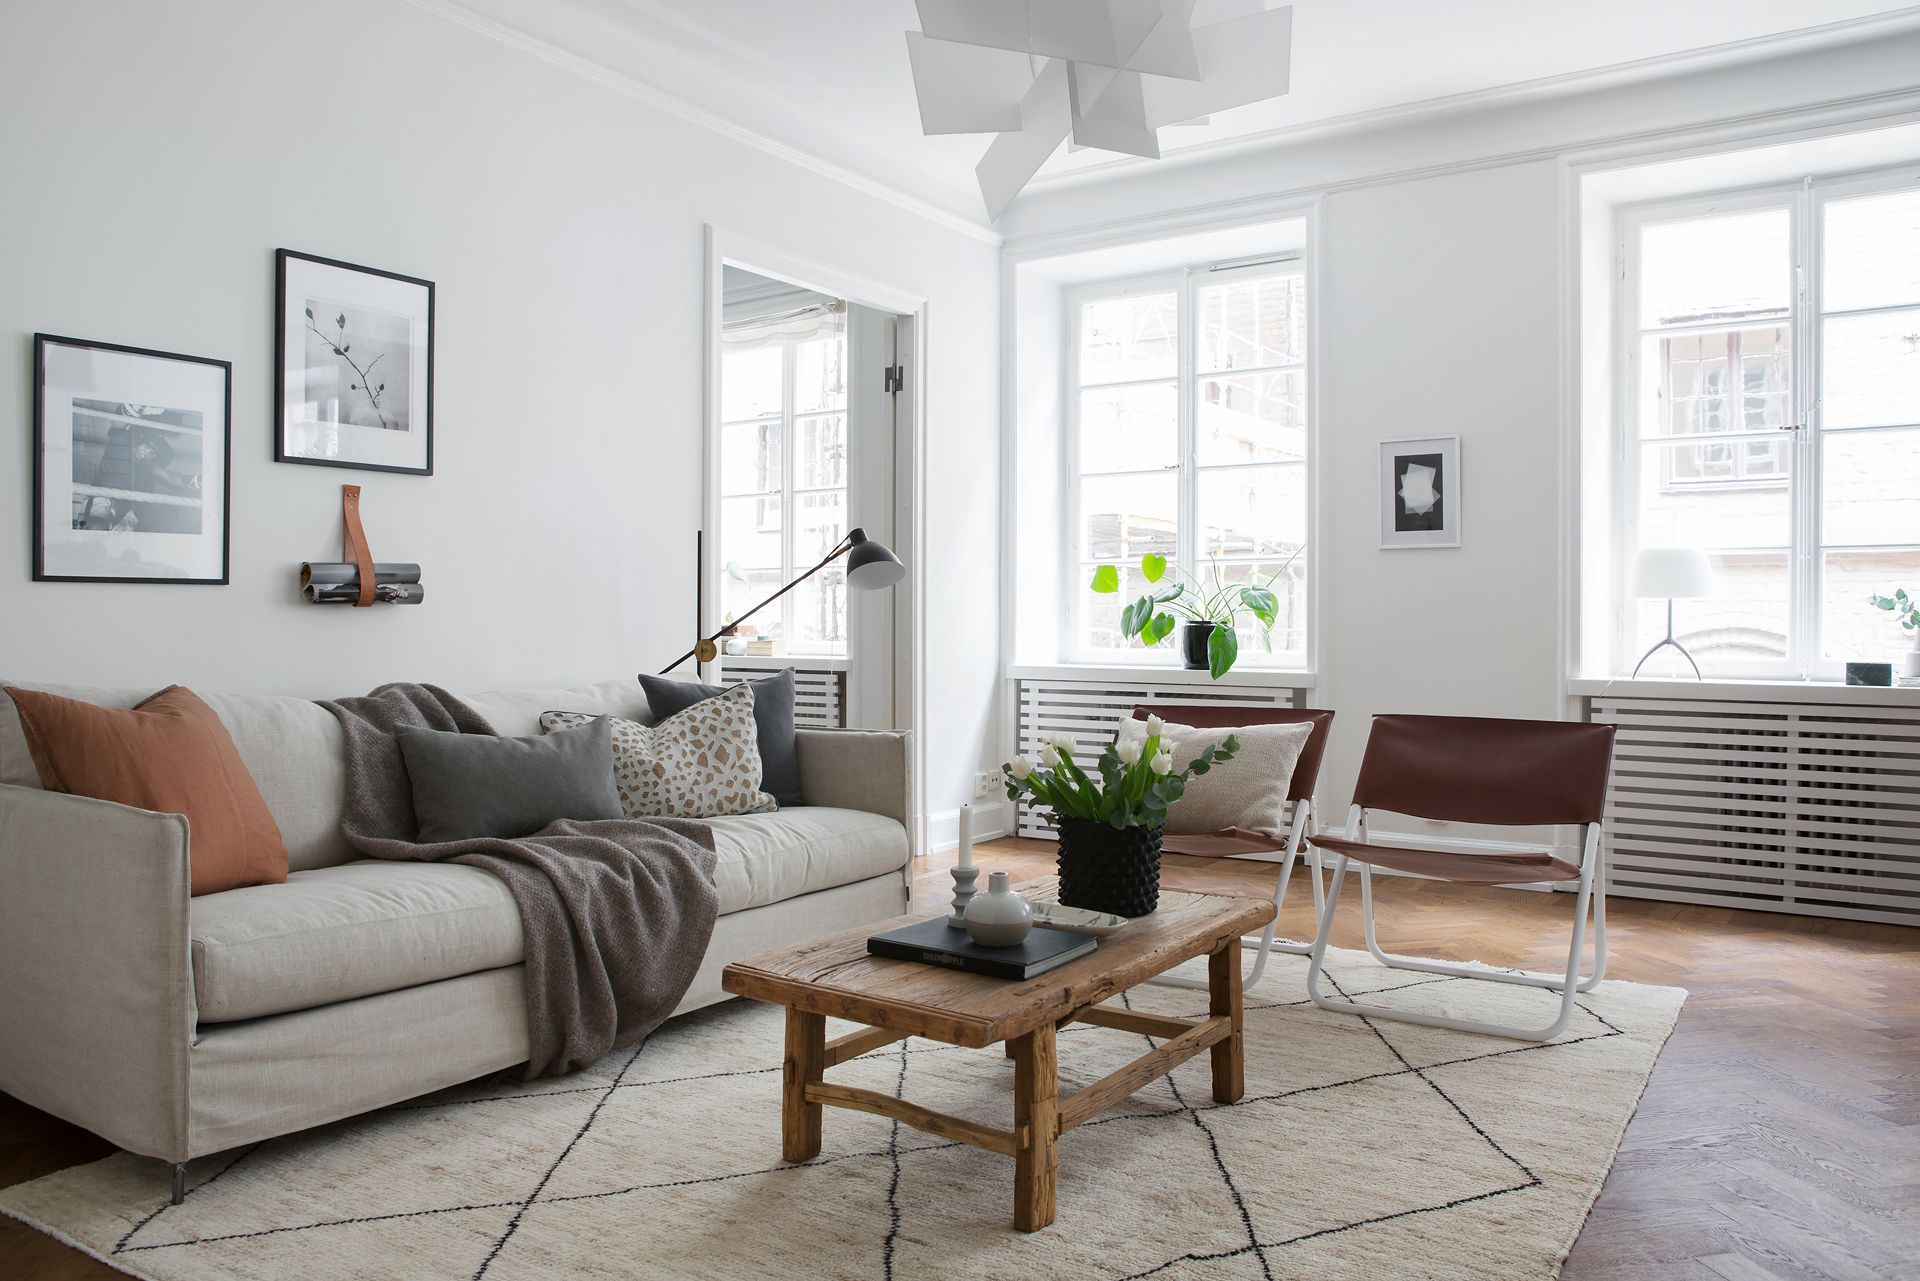 A renovated apartment with simplified eclecticism | Living rooms ...